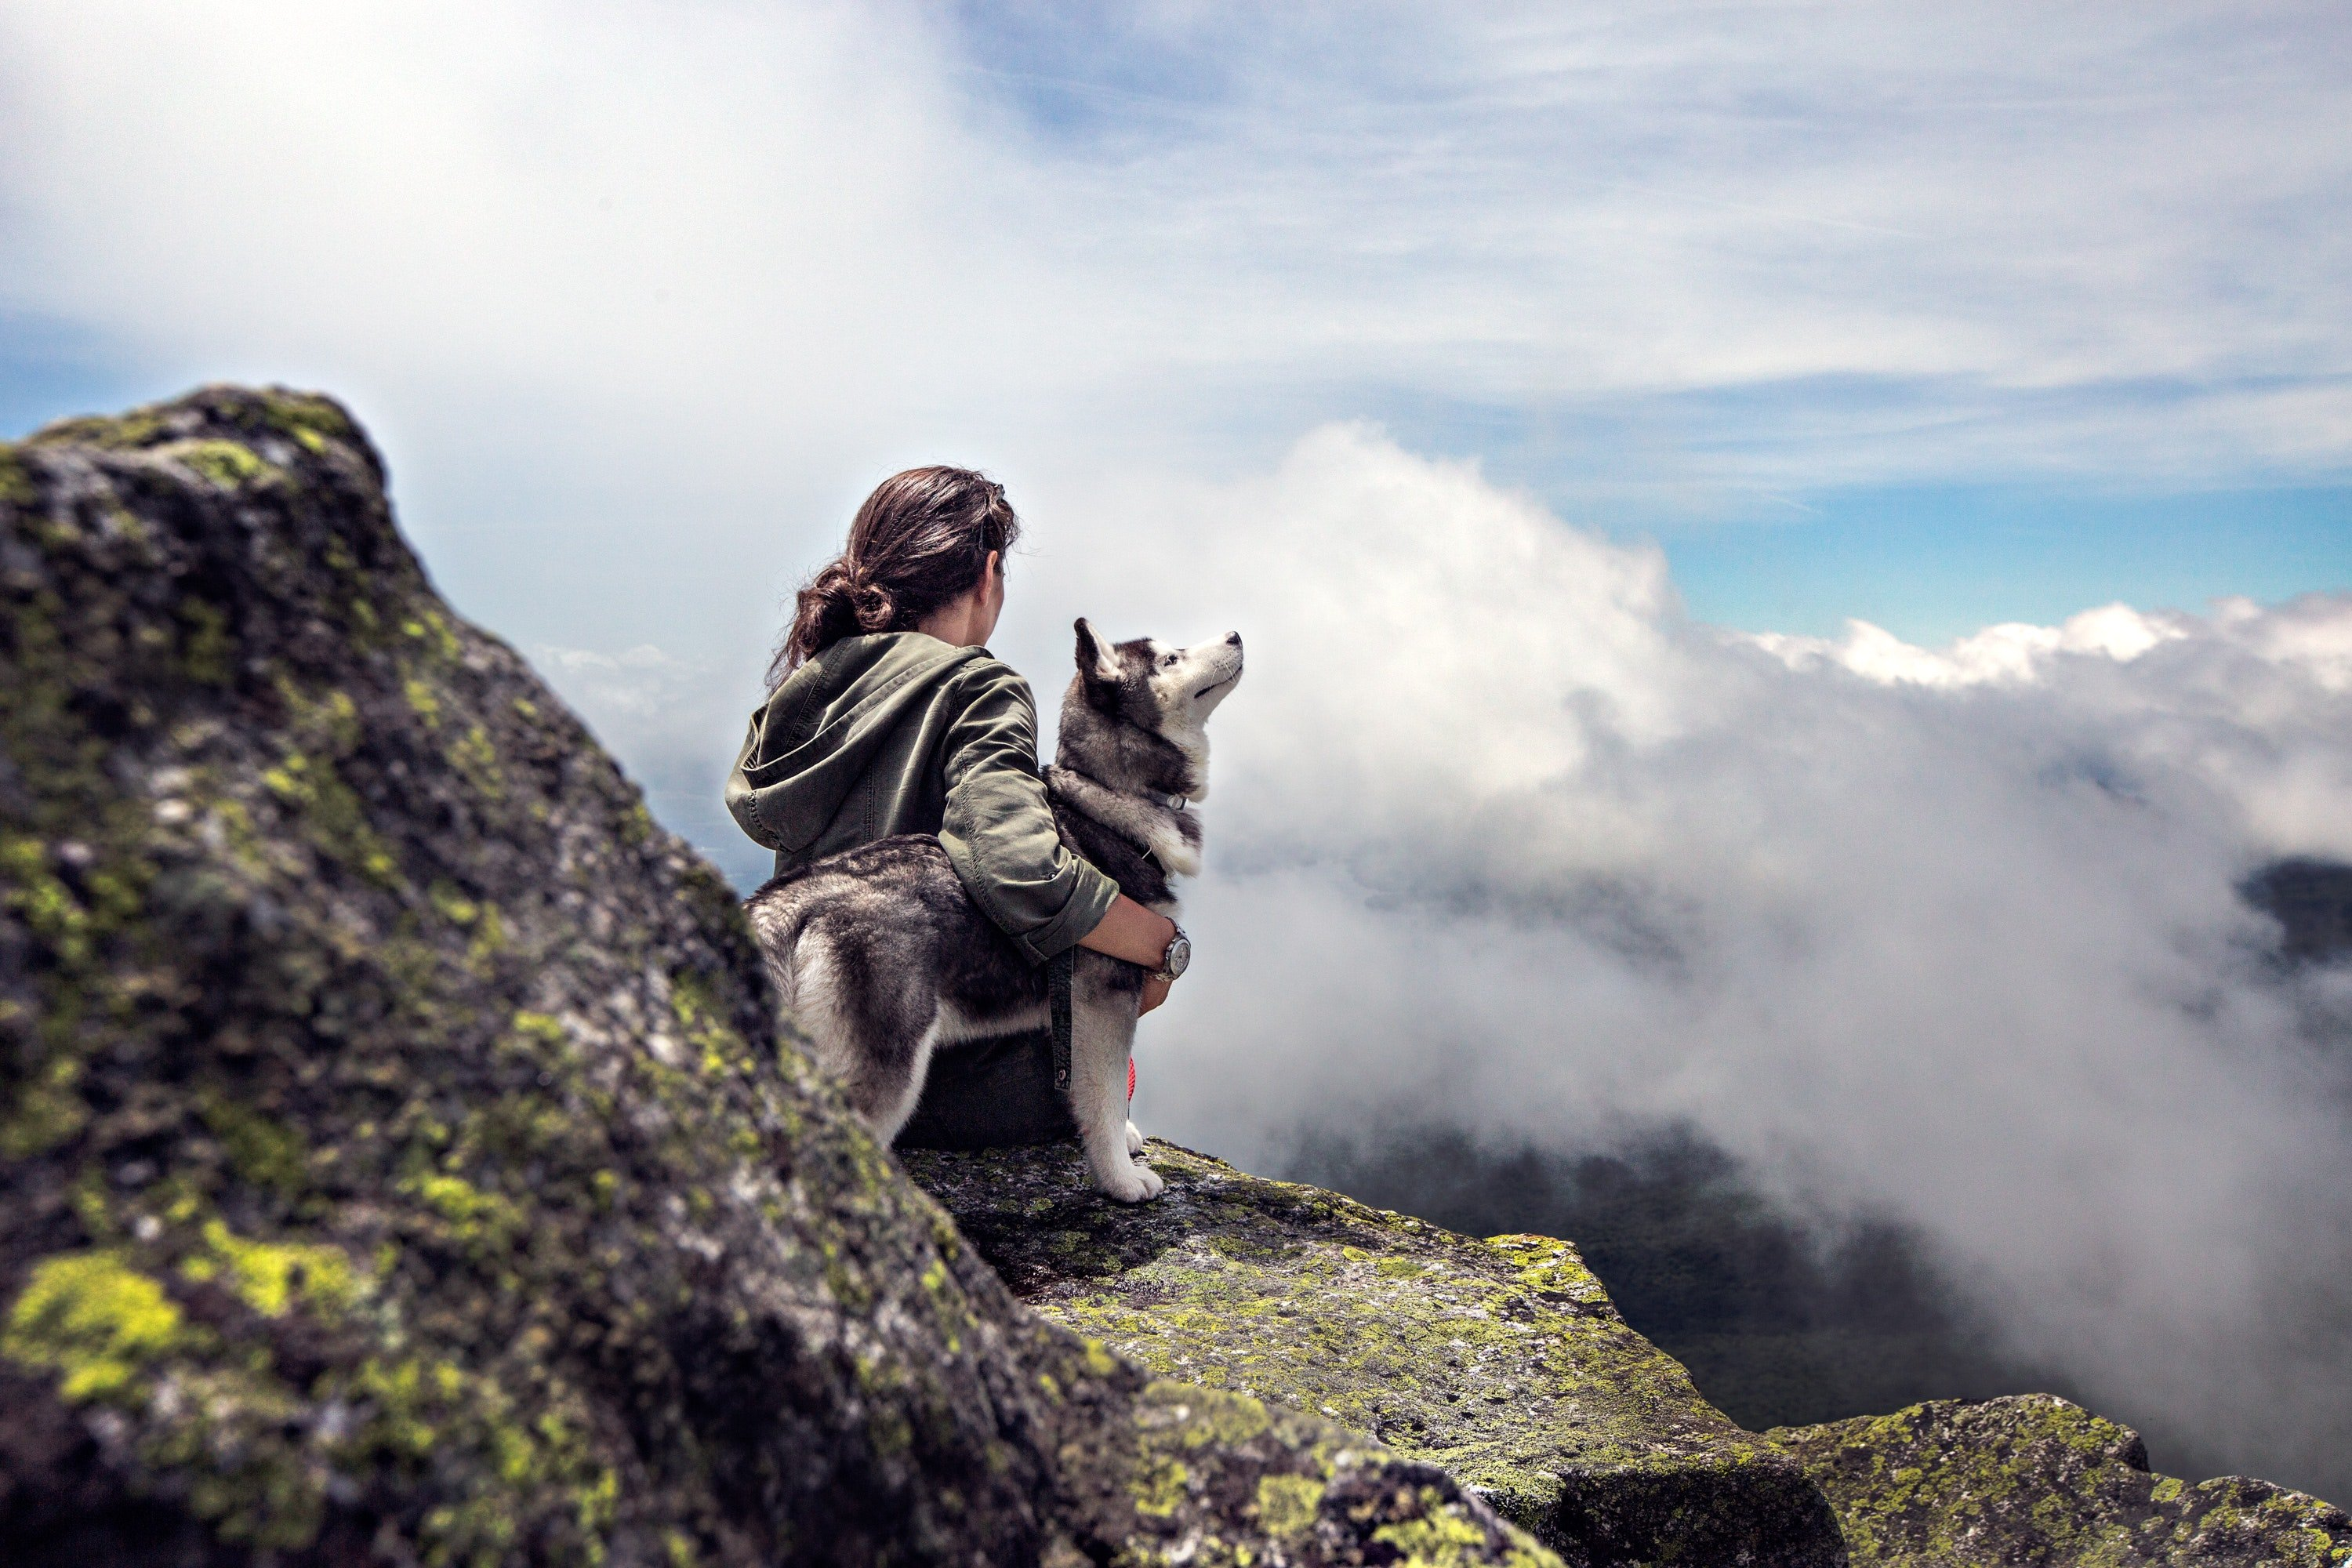 adventure-clouds-dog-36372